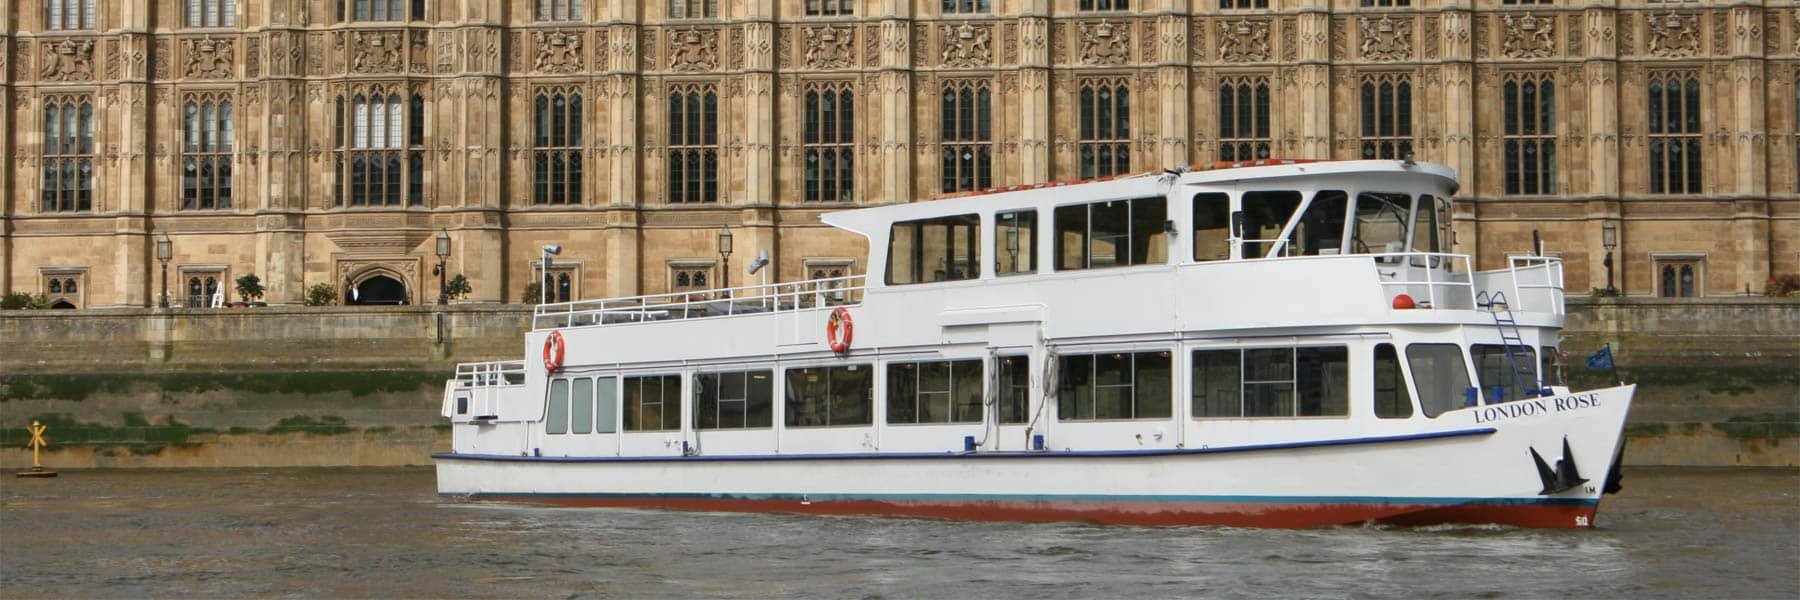 M.V London Rose passing the New Palace of Westminster (Houses of Parliament)